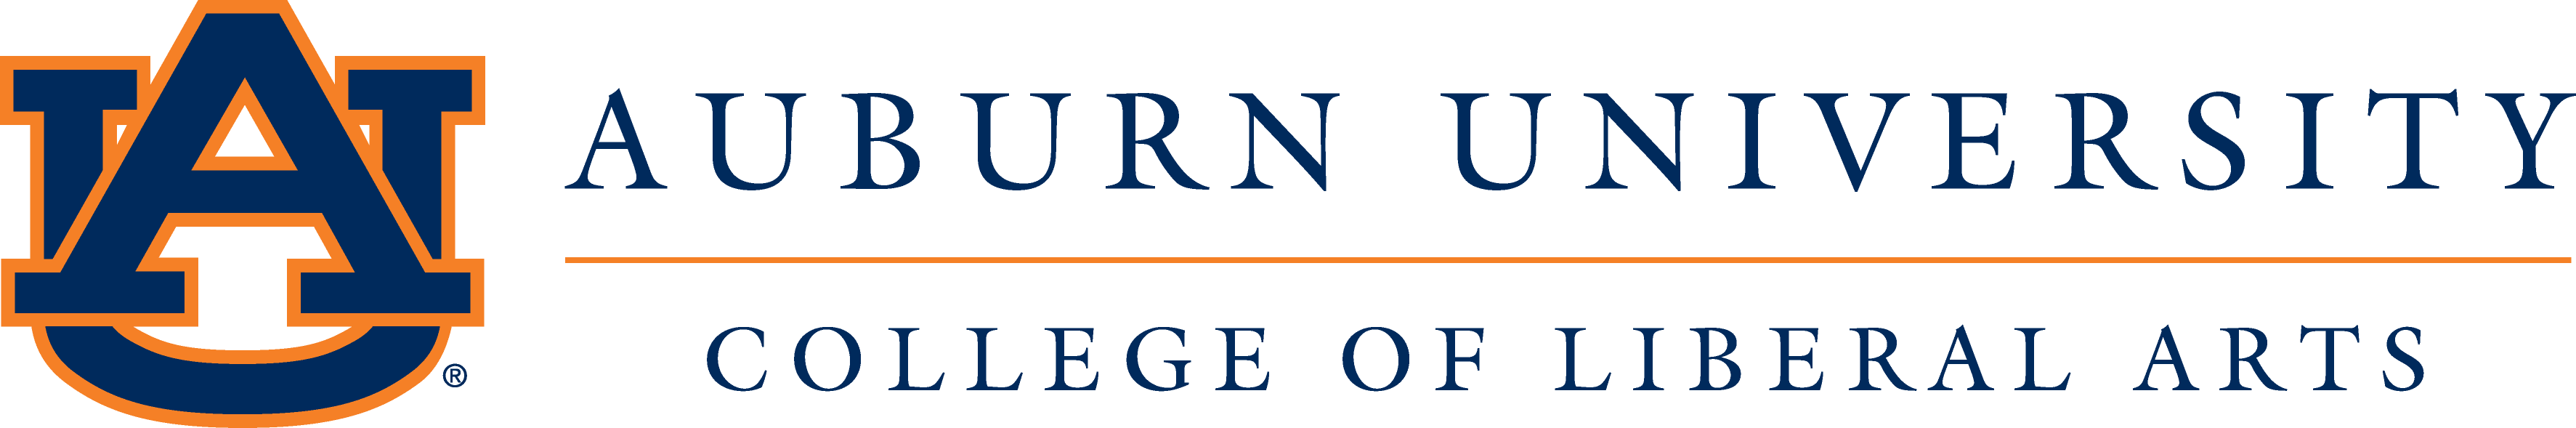 Auburn College of Liberal Arts Logo